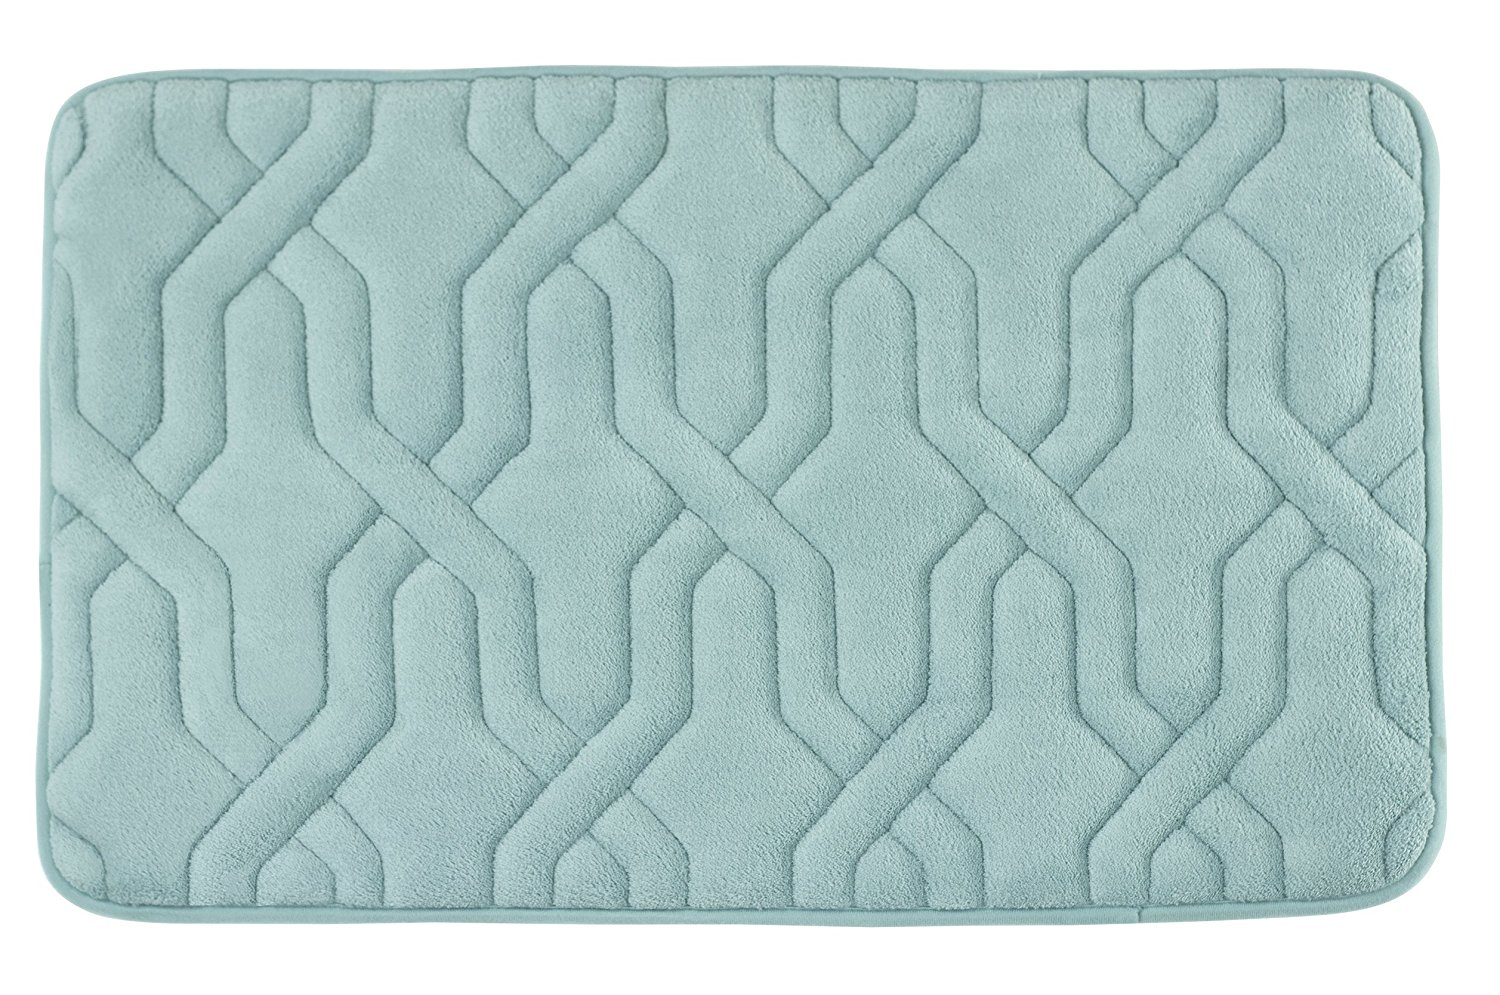 Extra thick memory foam bath mat connection boxes electrical